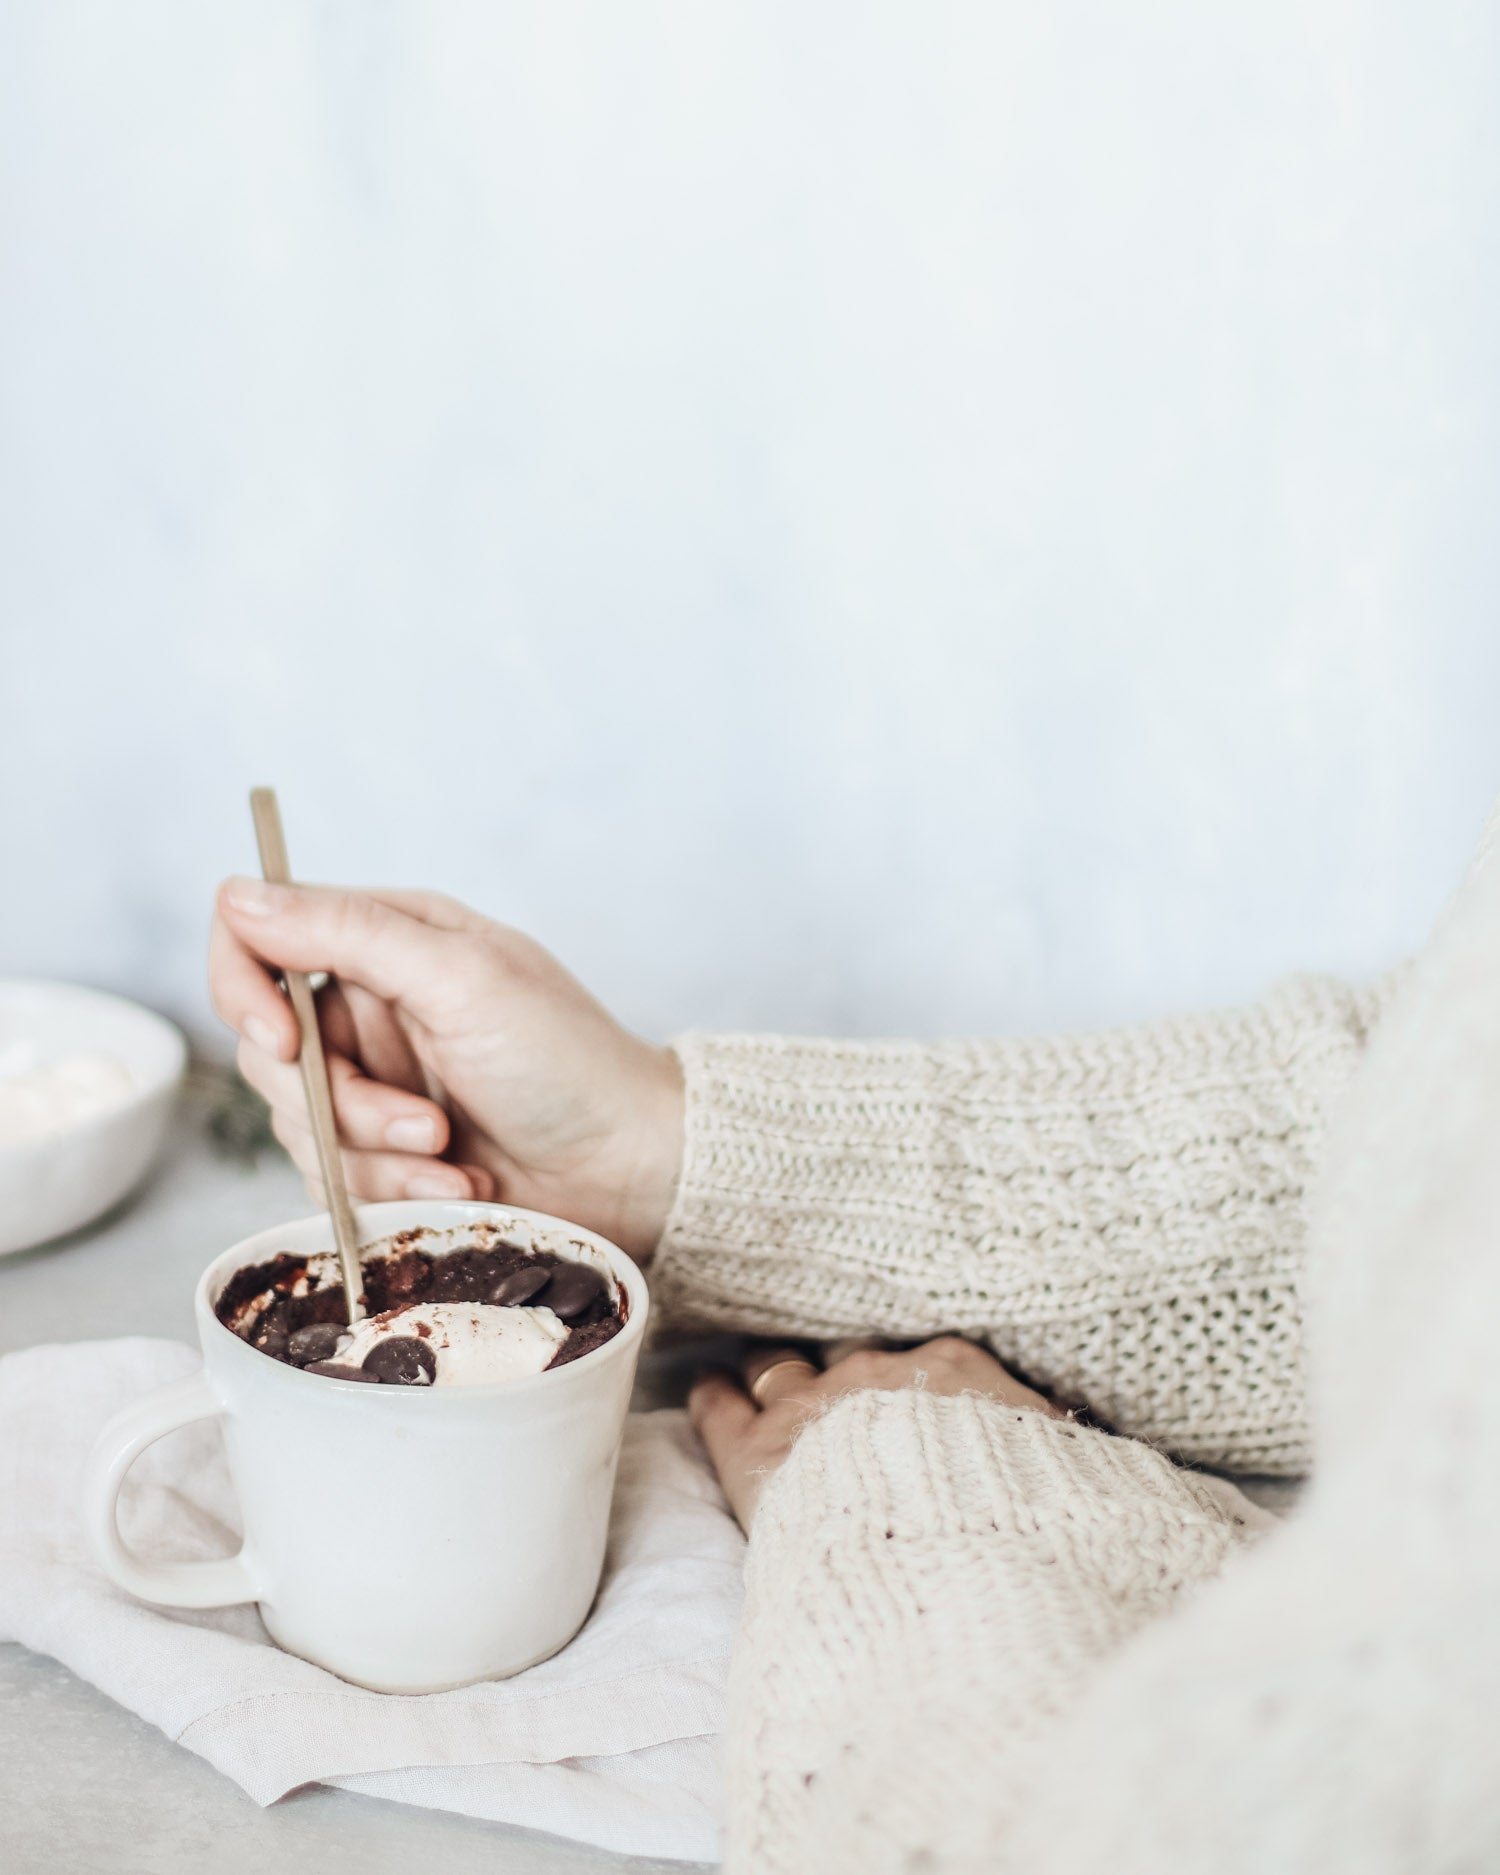 Baked chocolate pudding in a mug being enjoyed topped with cream